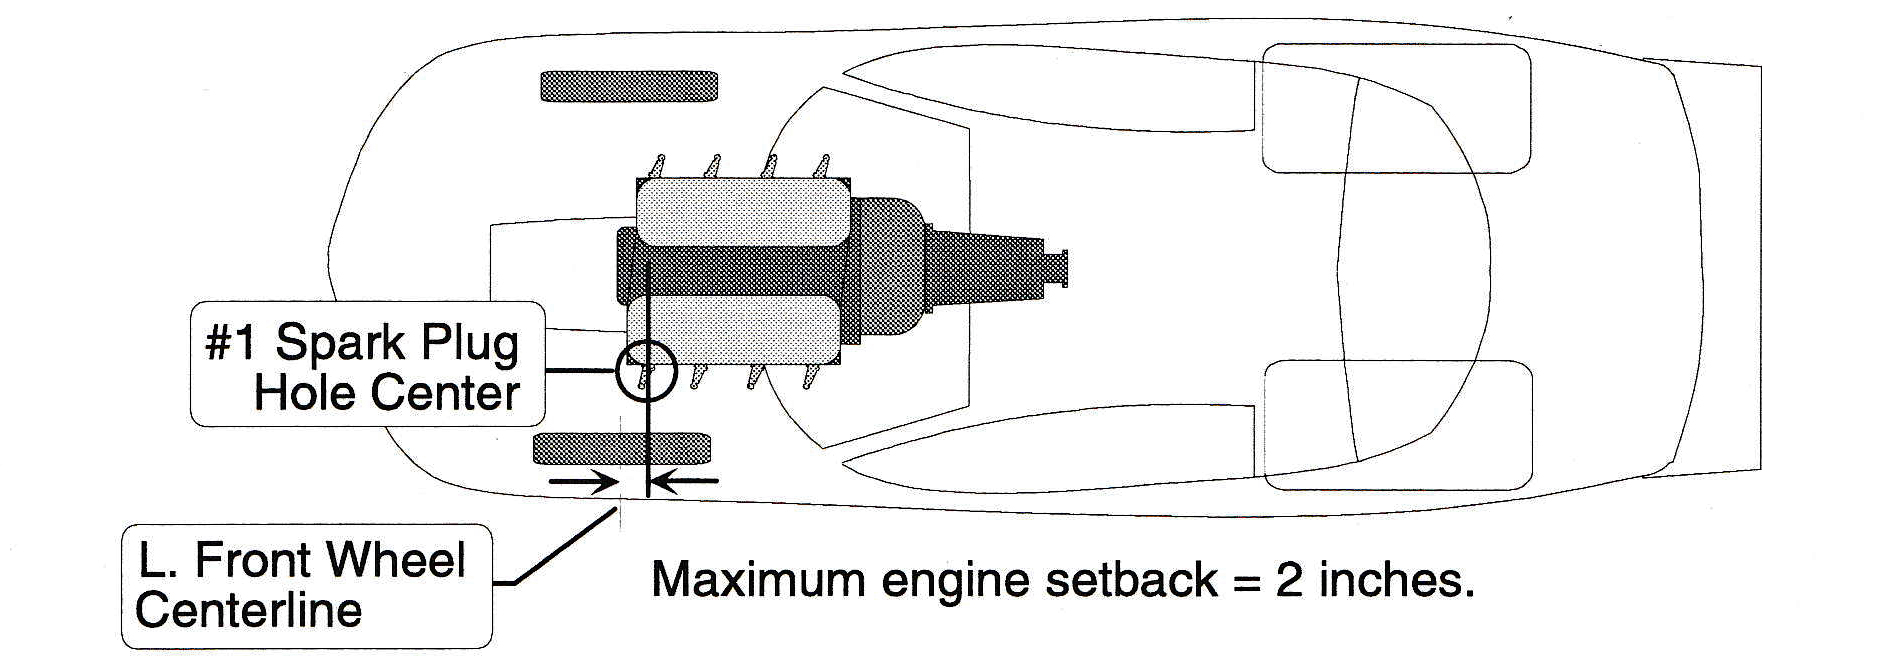 A Little Setback Engine Mounting Strategies For Drag Racing Rotax Motorcycle Diagram Clutch Before We Go Any Further Bickel Suggests Using Dummy Parts The Initial Mockup Motor Plate Installation Are Usually Damaged